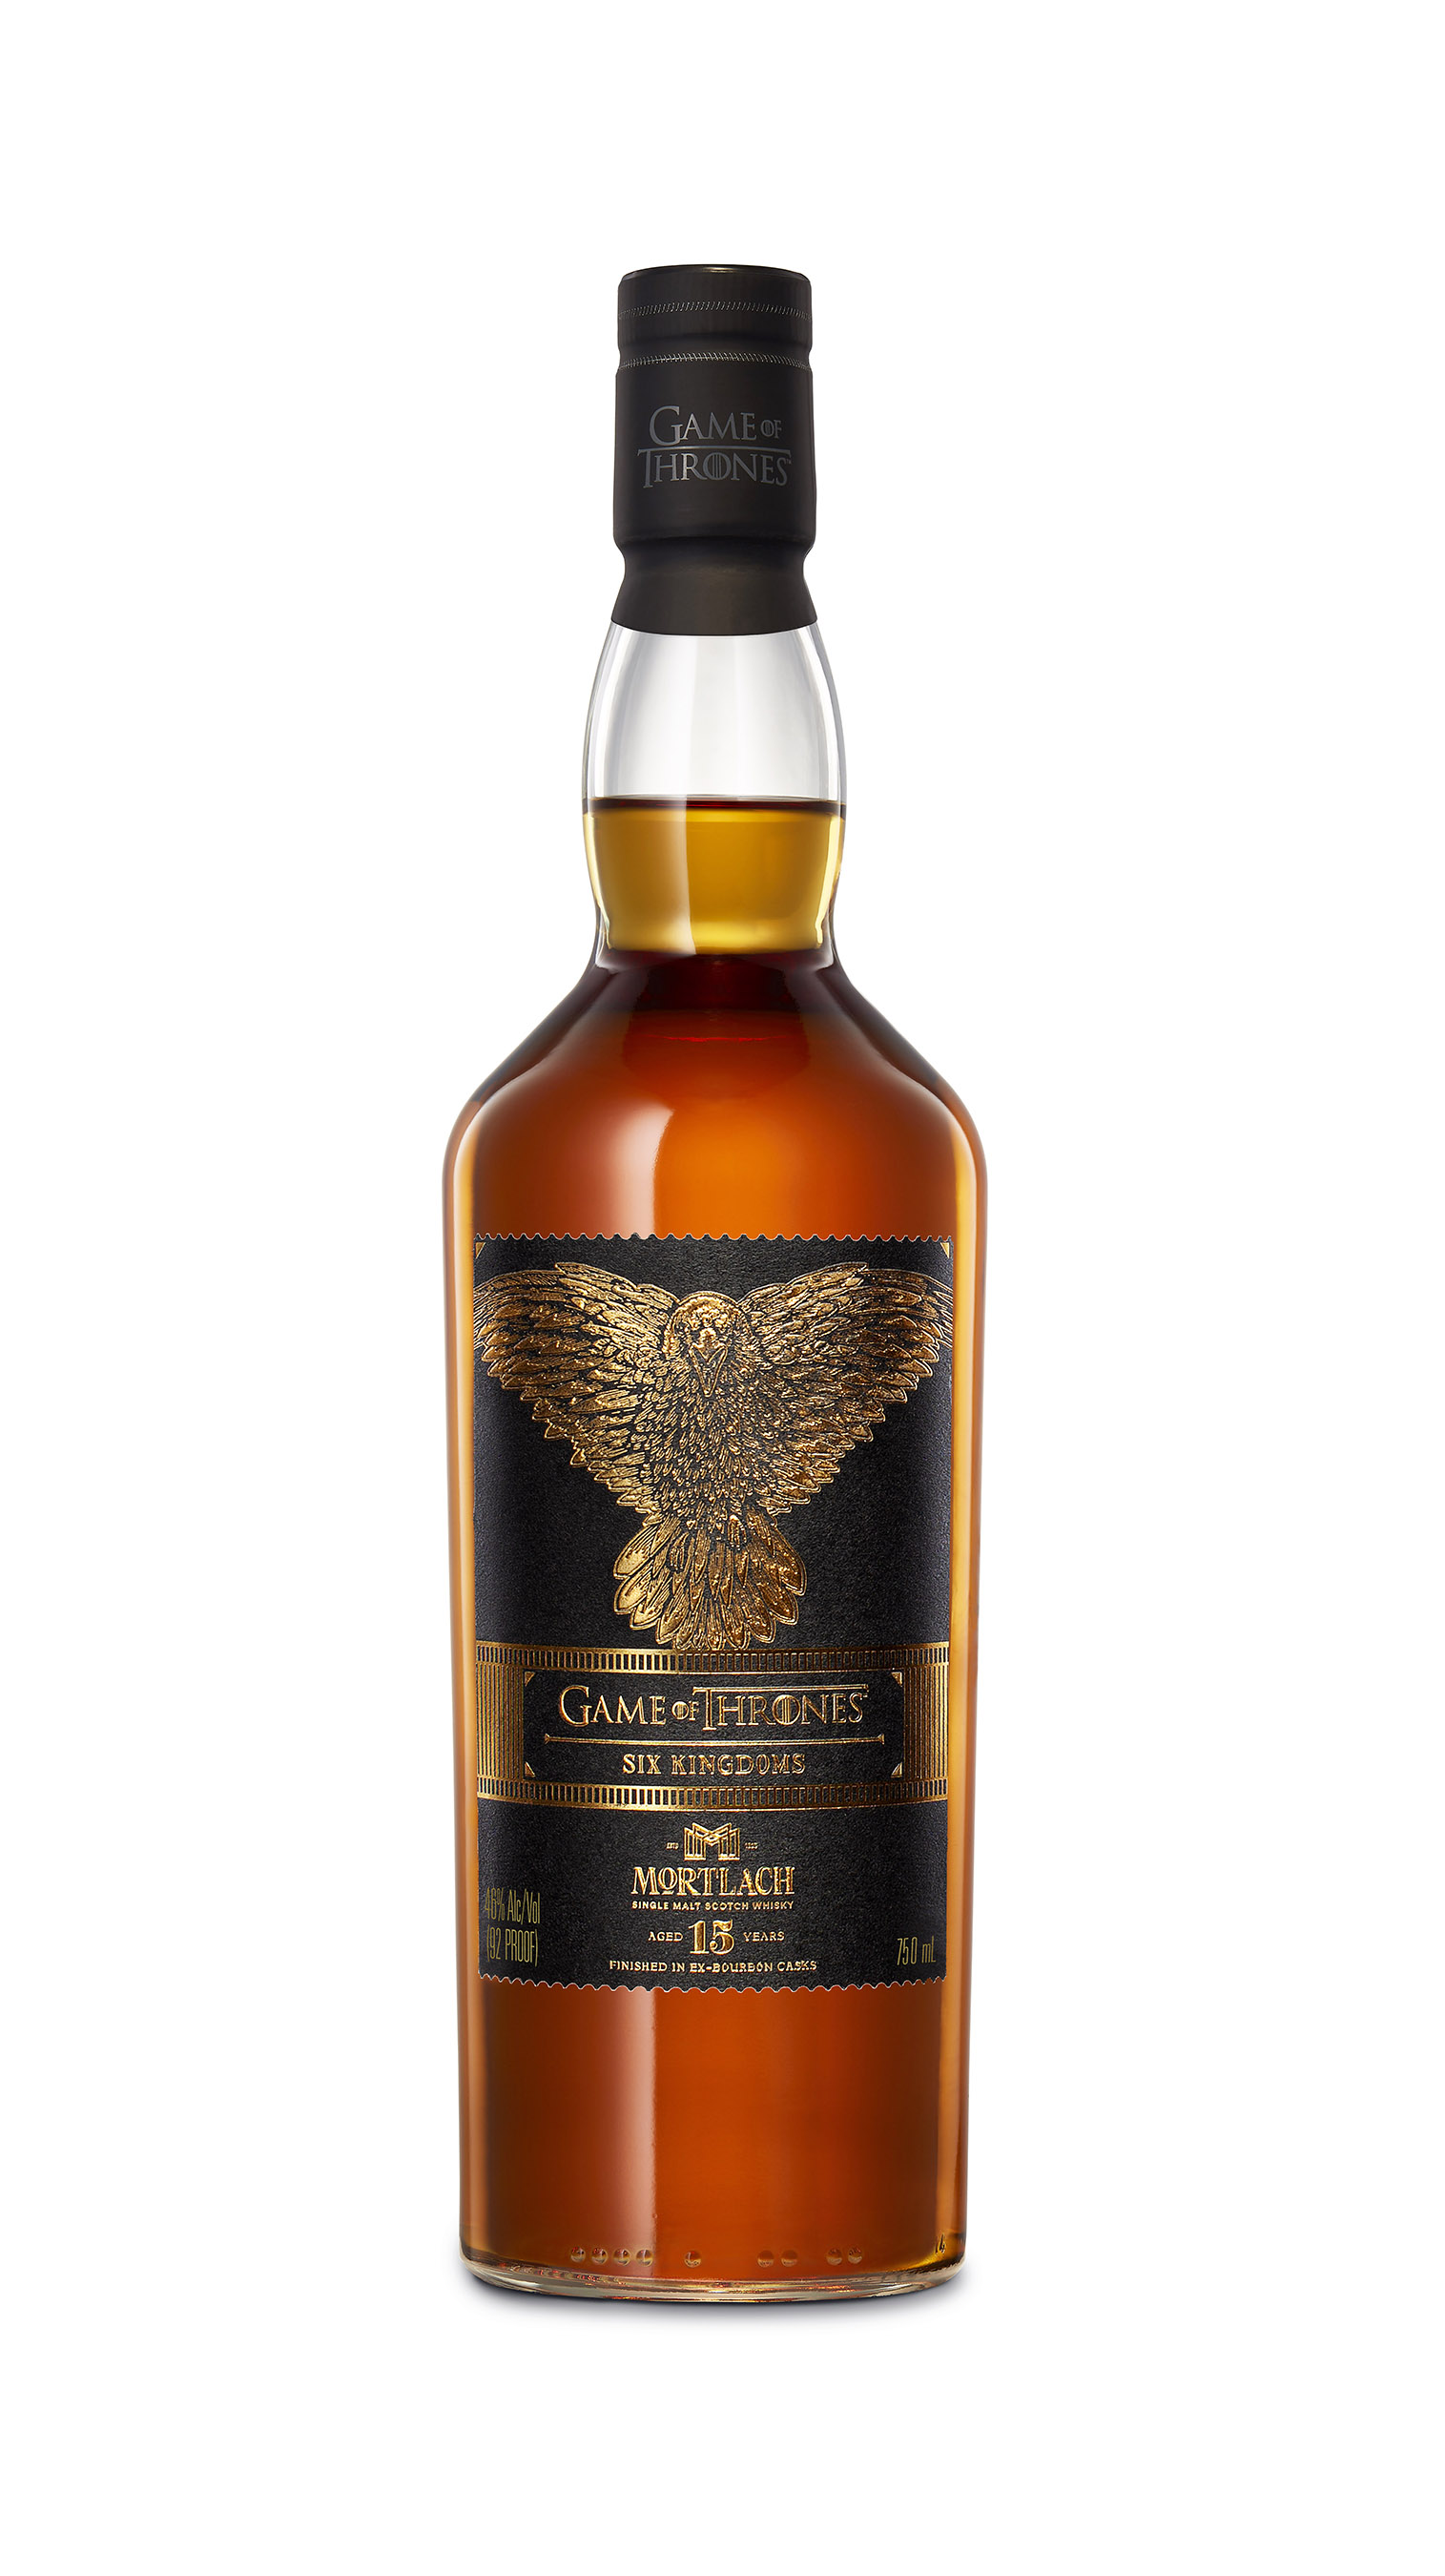 Game of Thrones Six Kingdoms - Mortlach Aged 15 Years